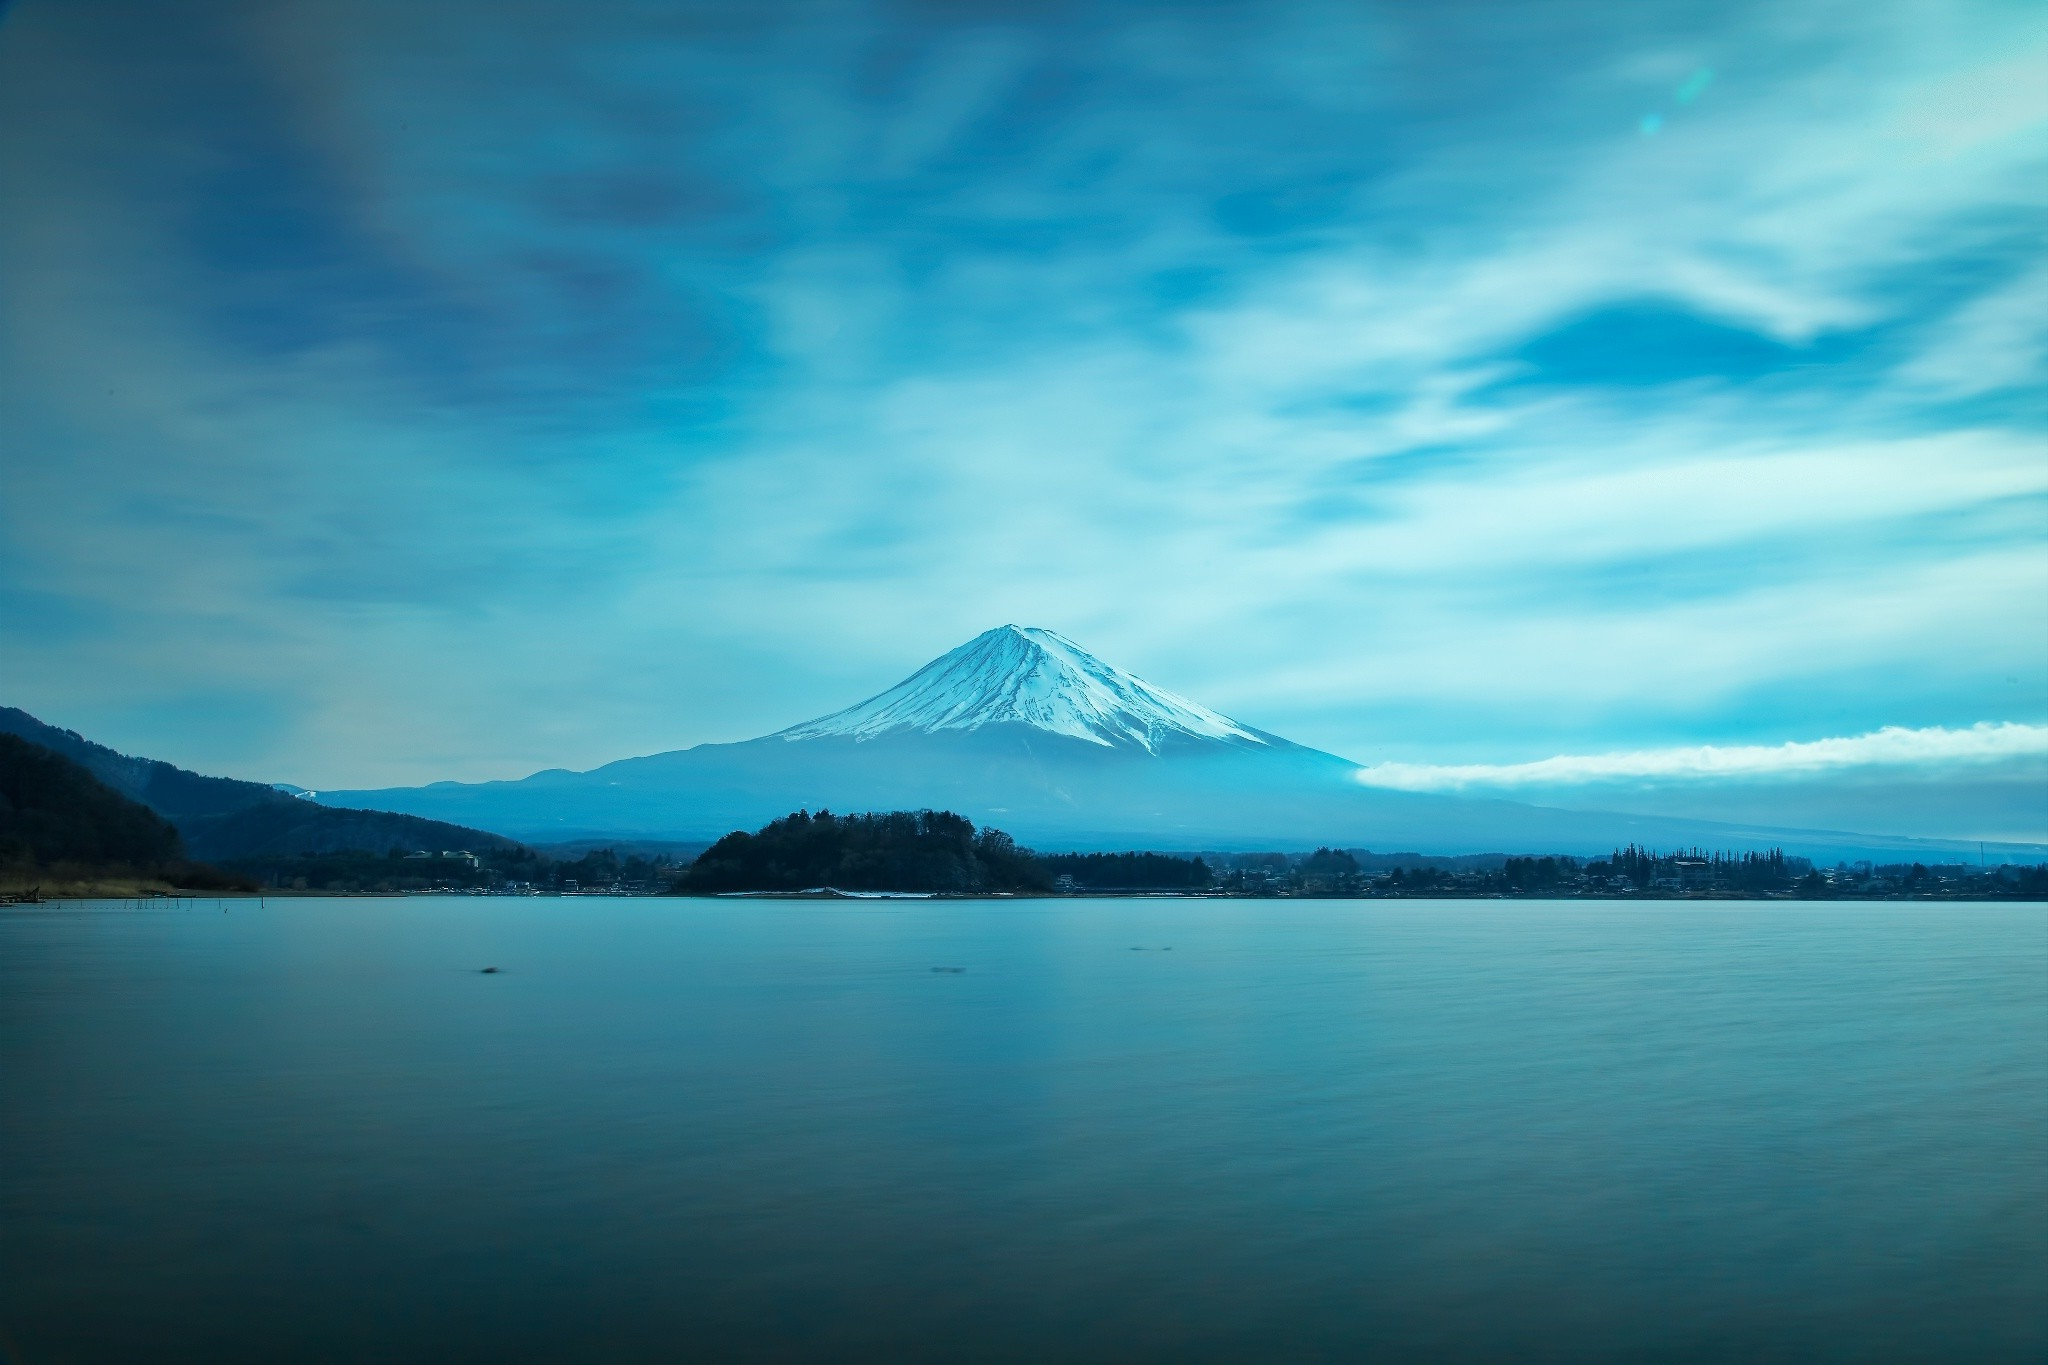 Top 20 Travel Photos on 500px So Far This Year - 500px